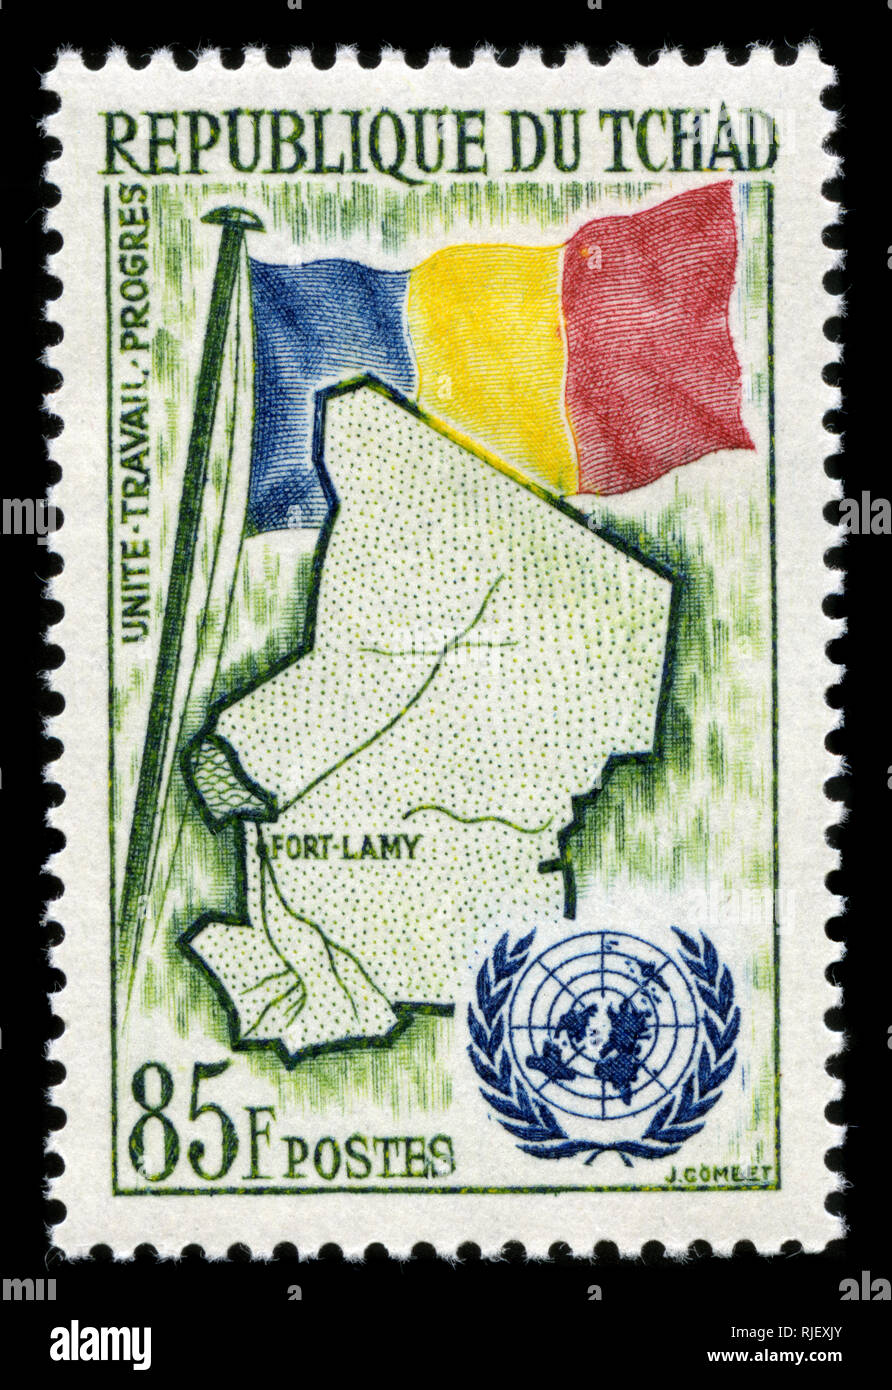 Postmarked stamp from Chad in the UN (United Nations) Membership series issued in 1961 - Stock Image